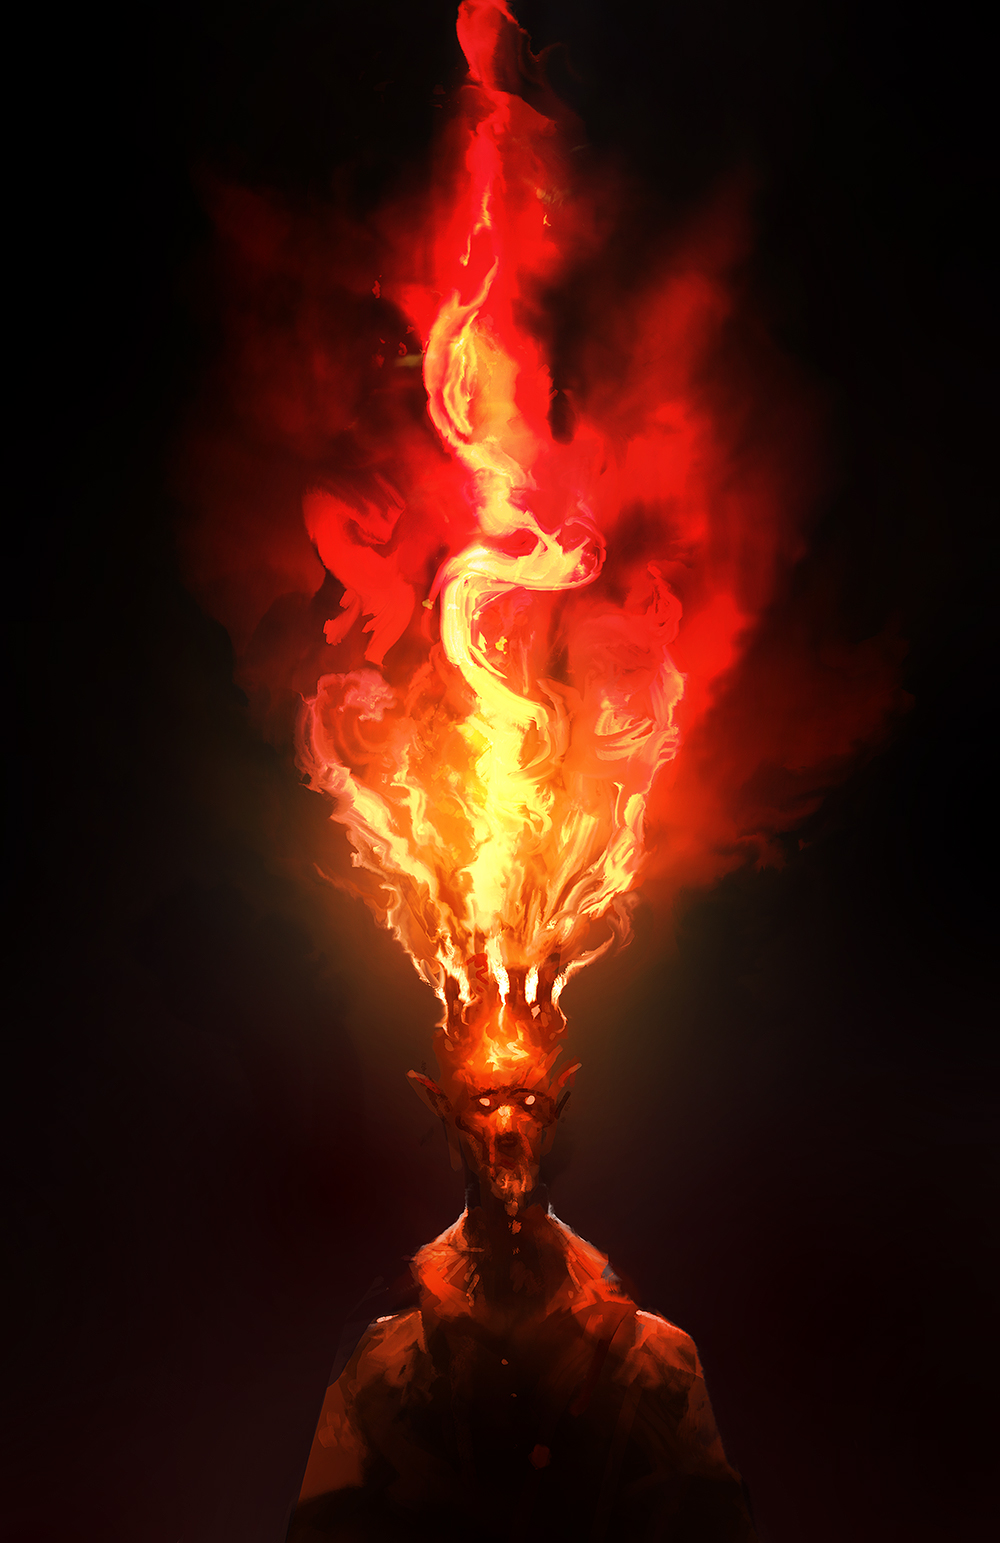 https://orig00.deviantart.net/c066/f/2018/260/6/3/burning_crown_by_cobaltplasma-dcn52x6.jpg